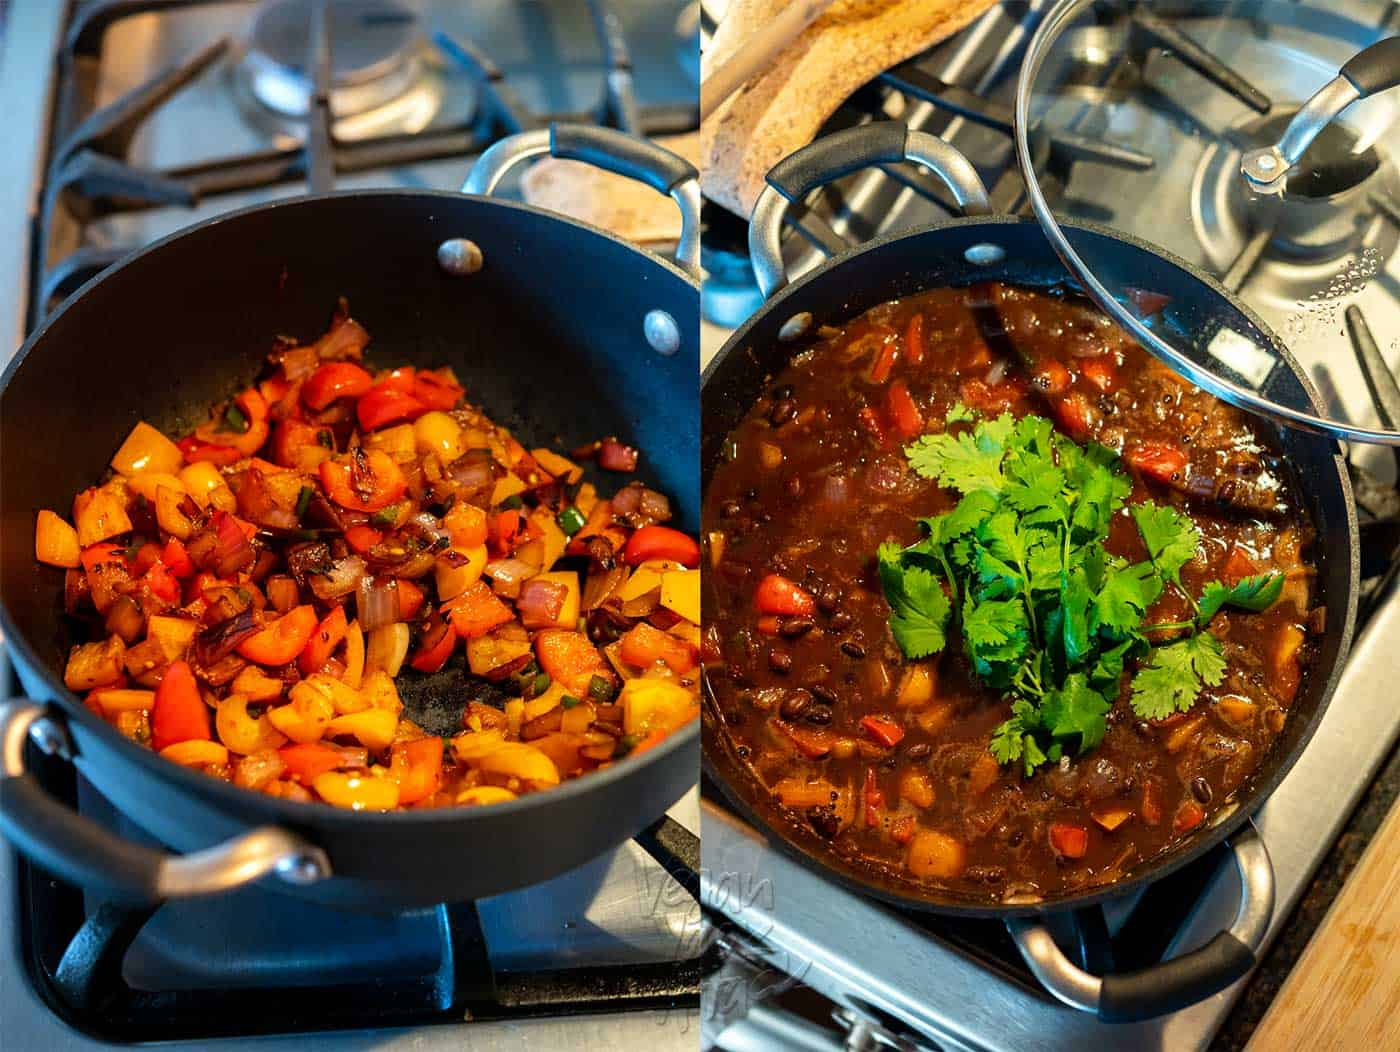 Two images, side-by-side of steps in cooking soup on a stovetop